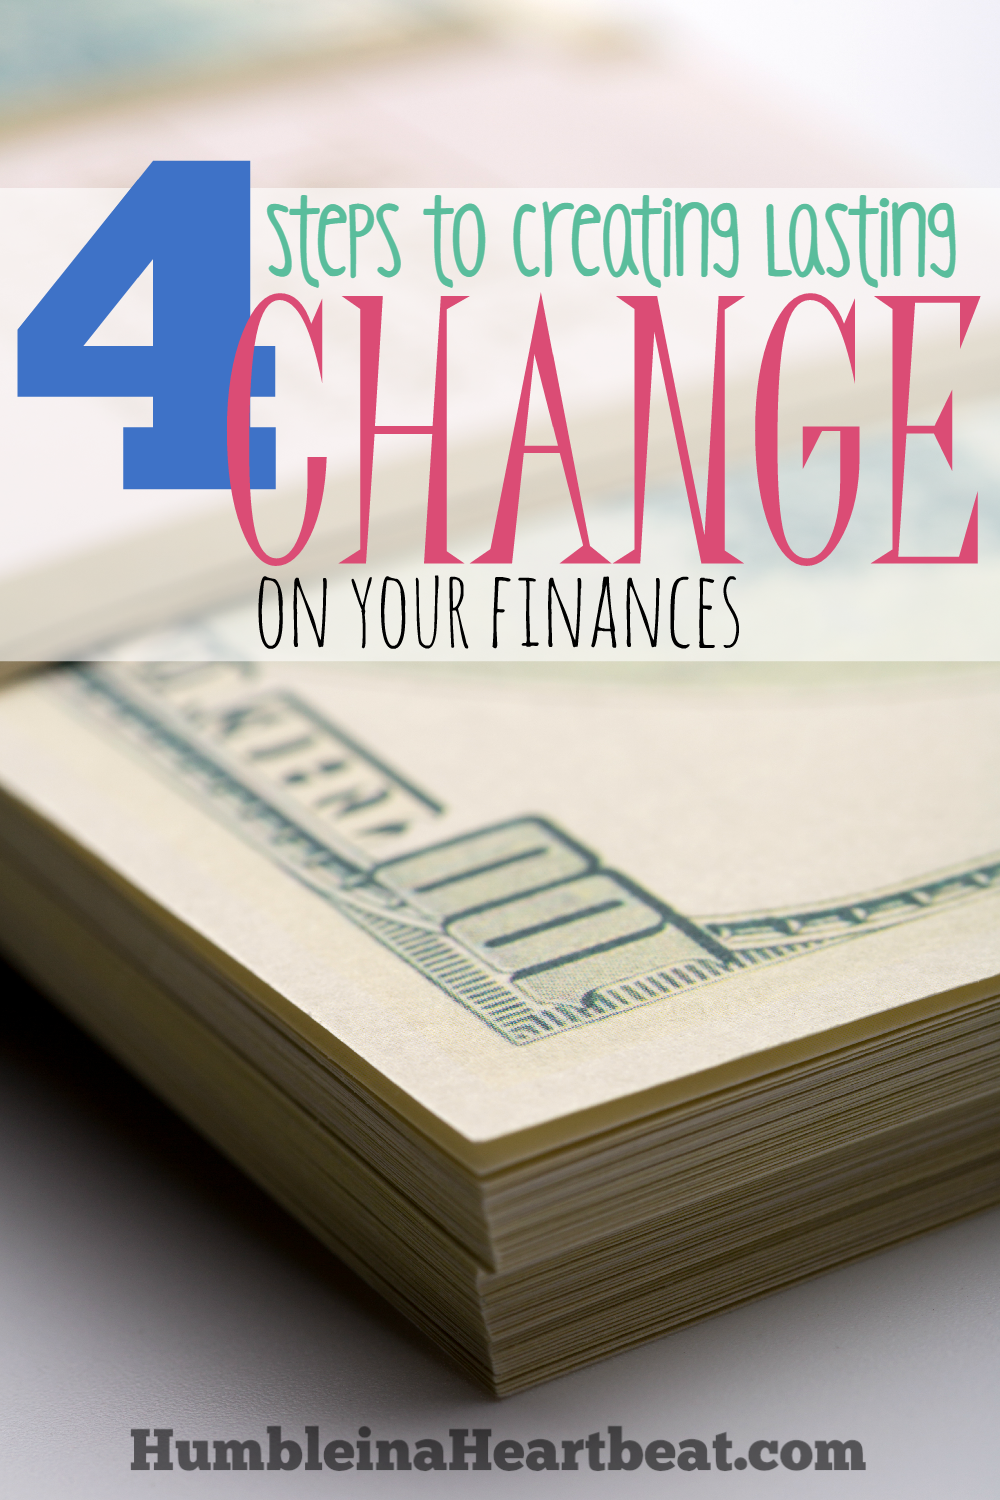 Your finances are not a roll of the dice. YOU have the power to create the change you need to reach your financial goals. Learn how to make lasting changes on your finances NOW so tomorrow you can be in a better situation.